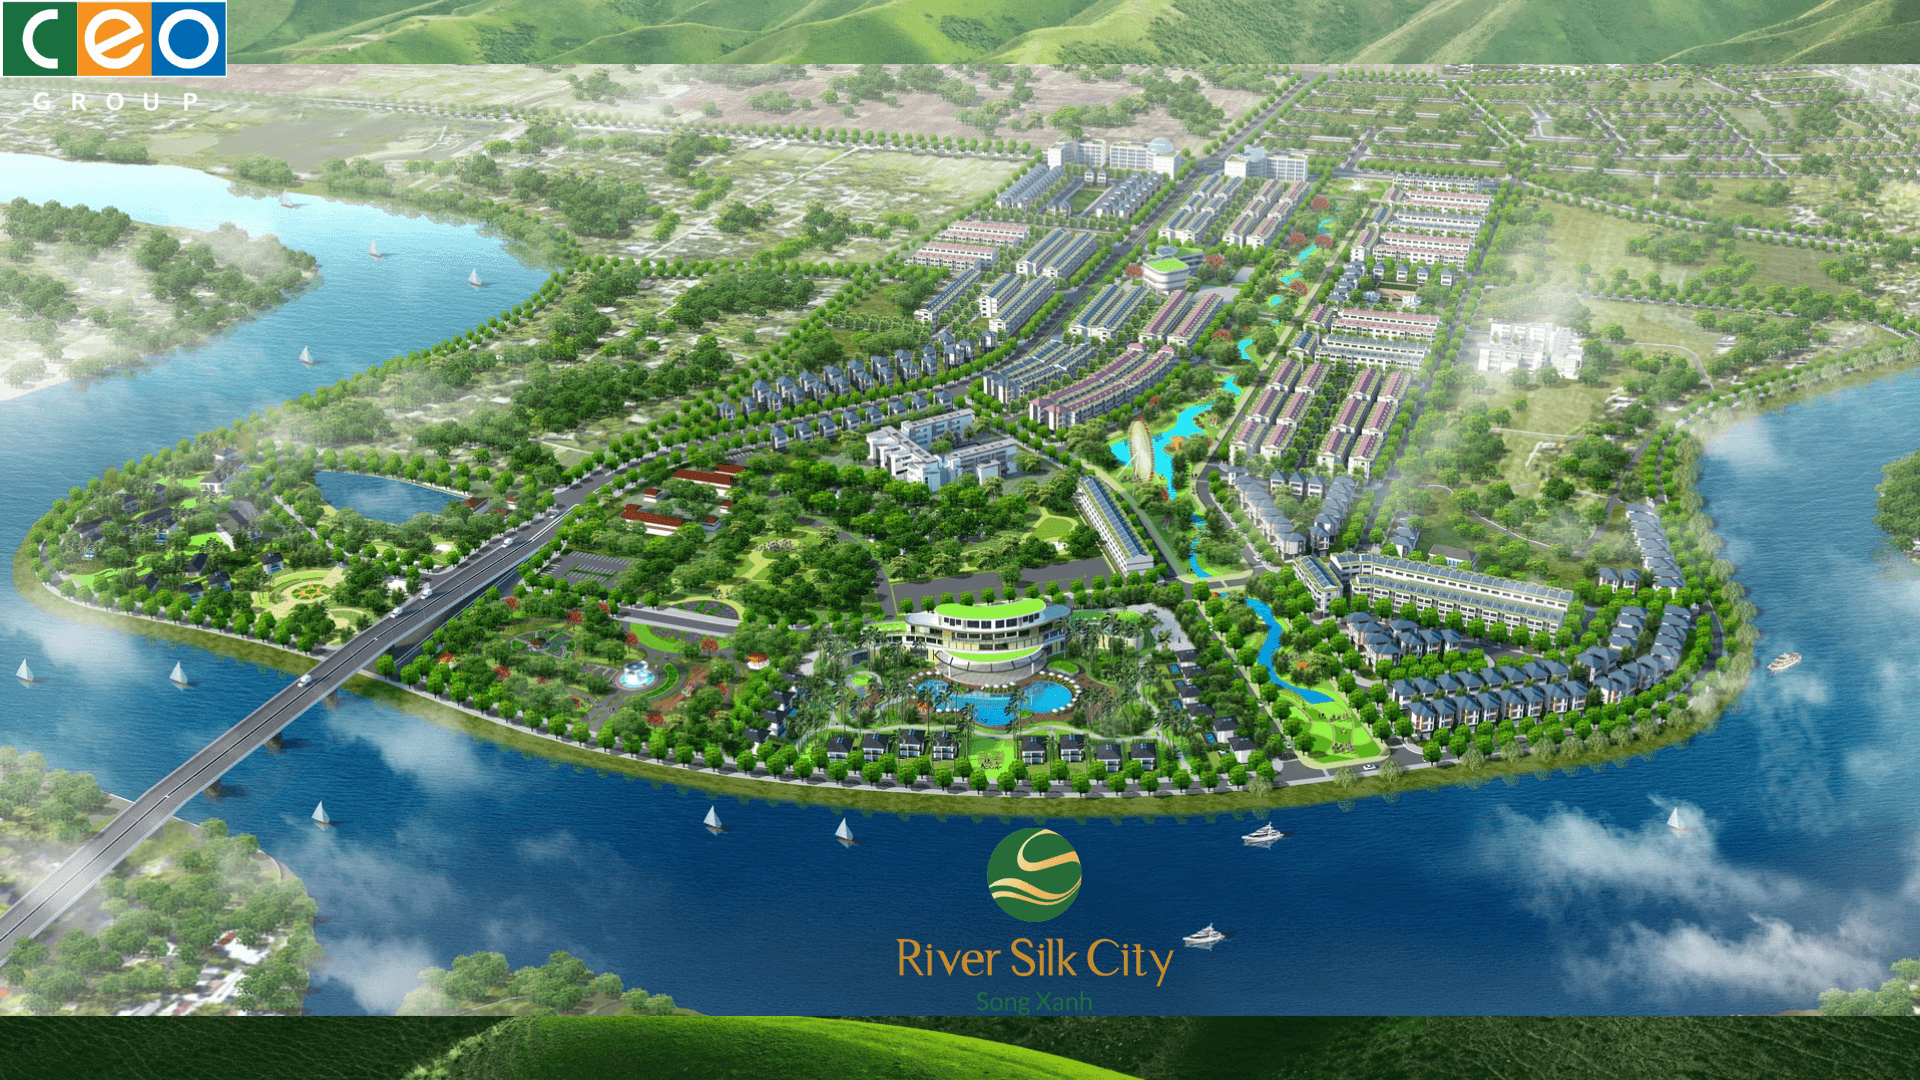 River Silk City